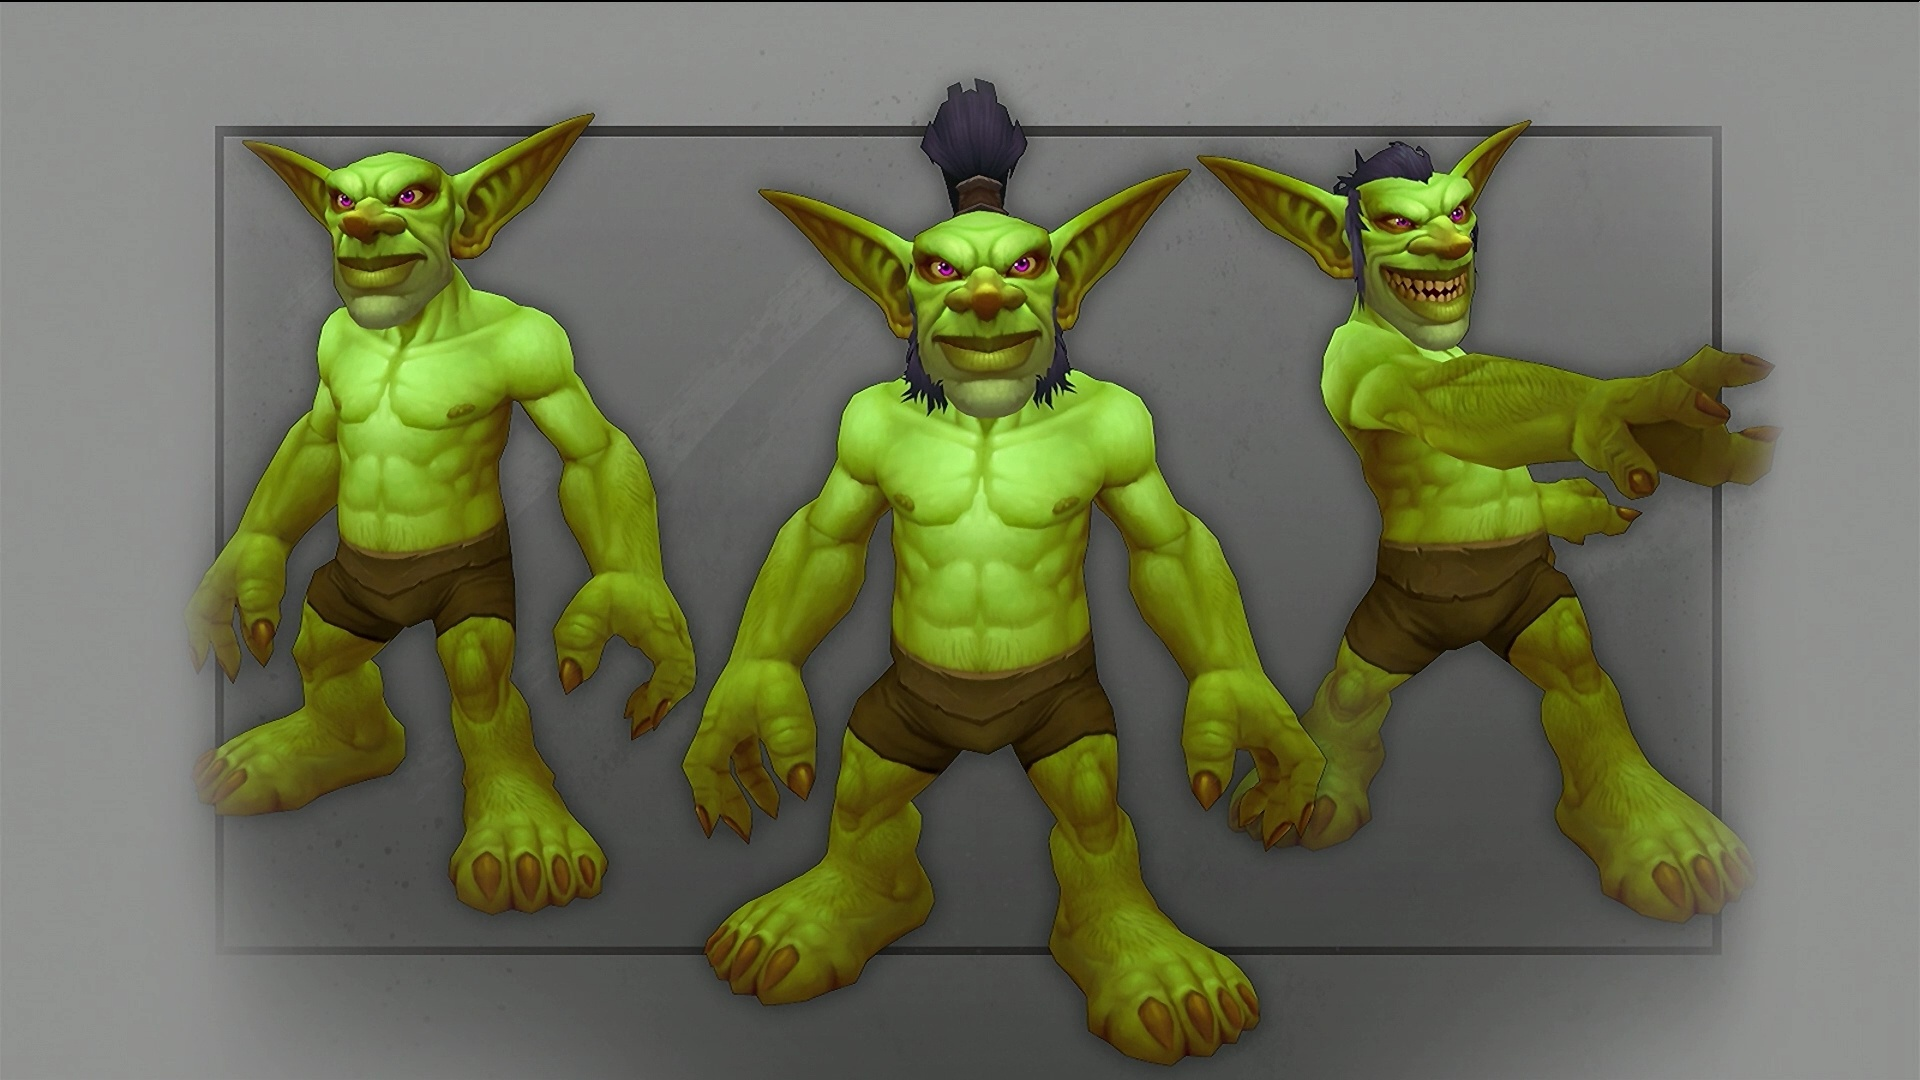 New Worgen and Goblin Models Coming in a Future Patch - Wowhead News